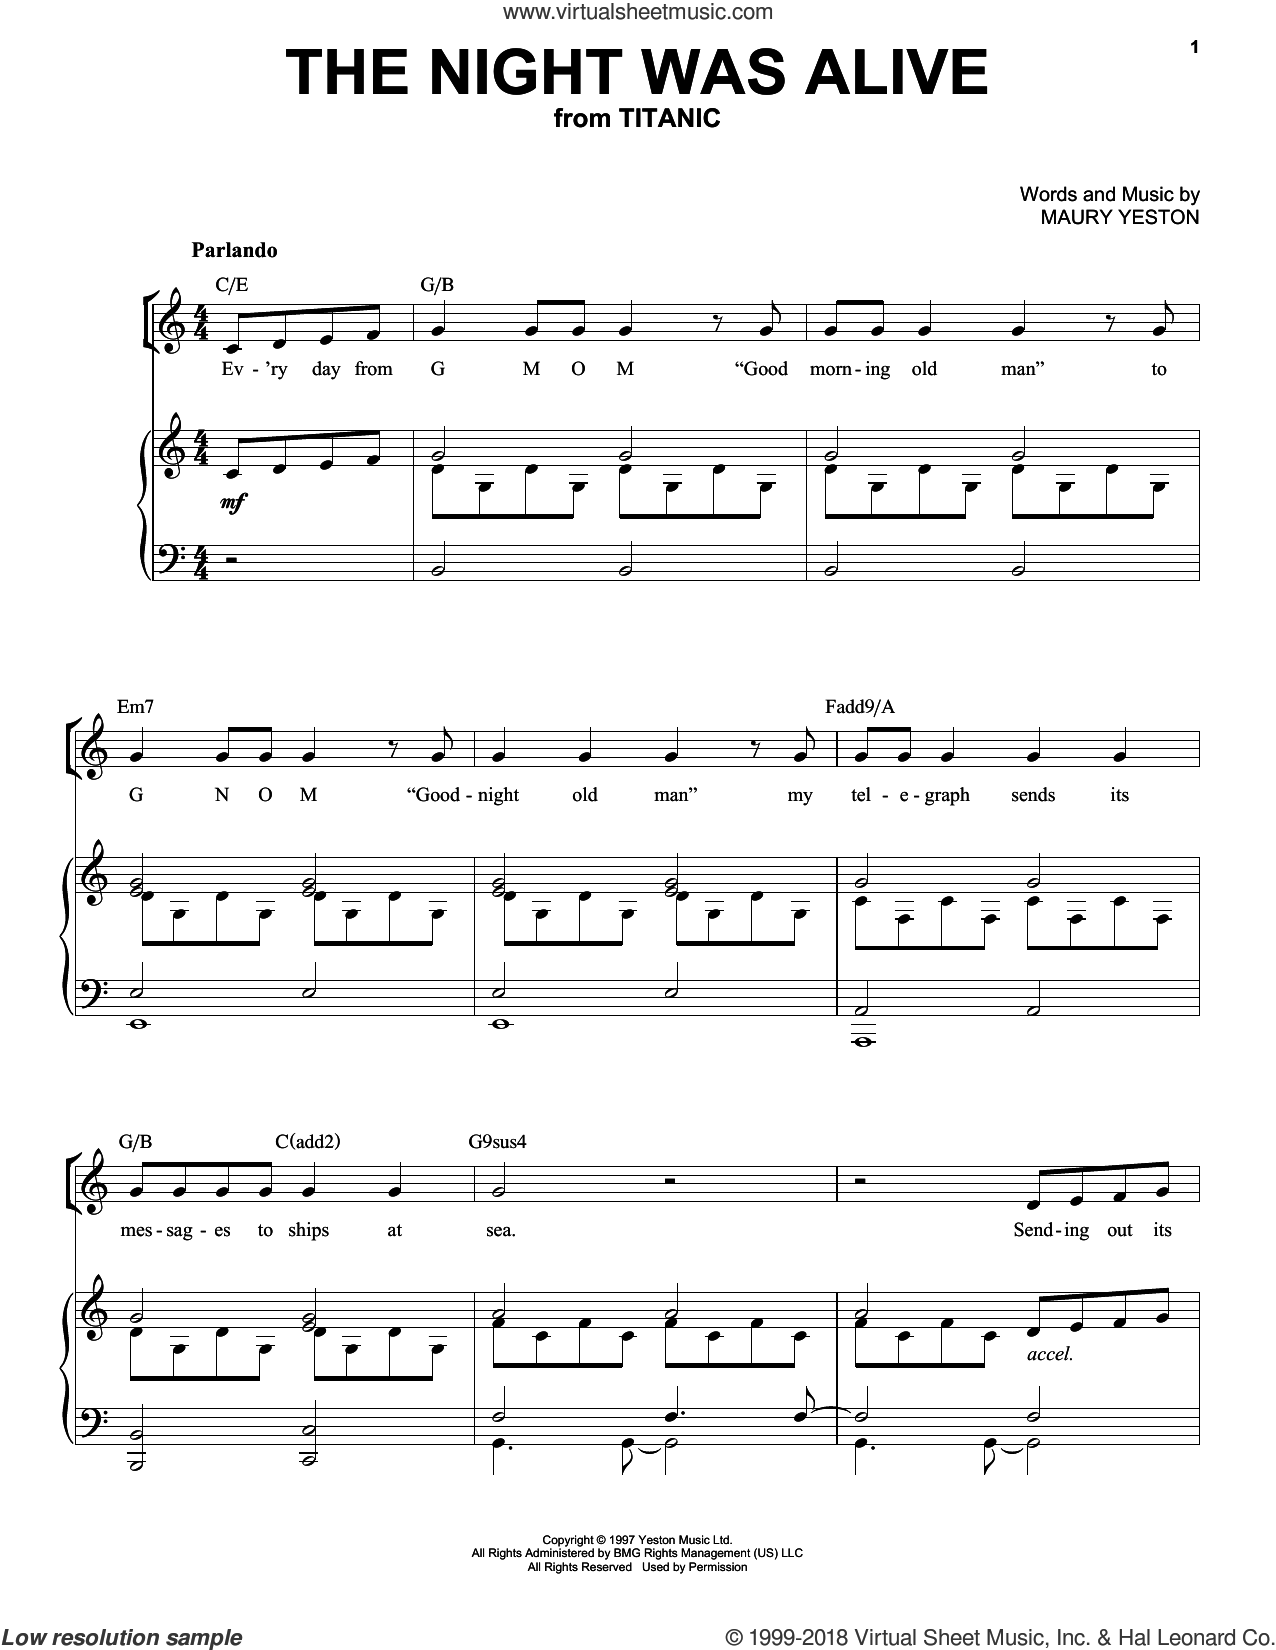 The Night Was Alive sheet music for voice, piano or guitar by Maury Yeston, intermediate skill level